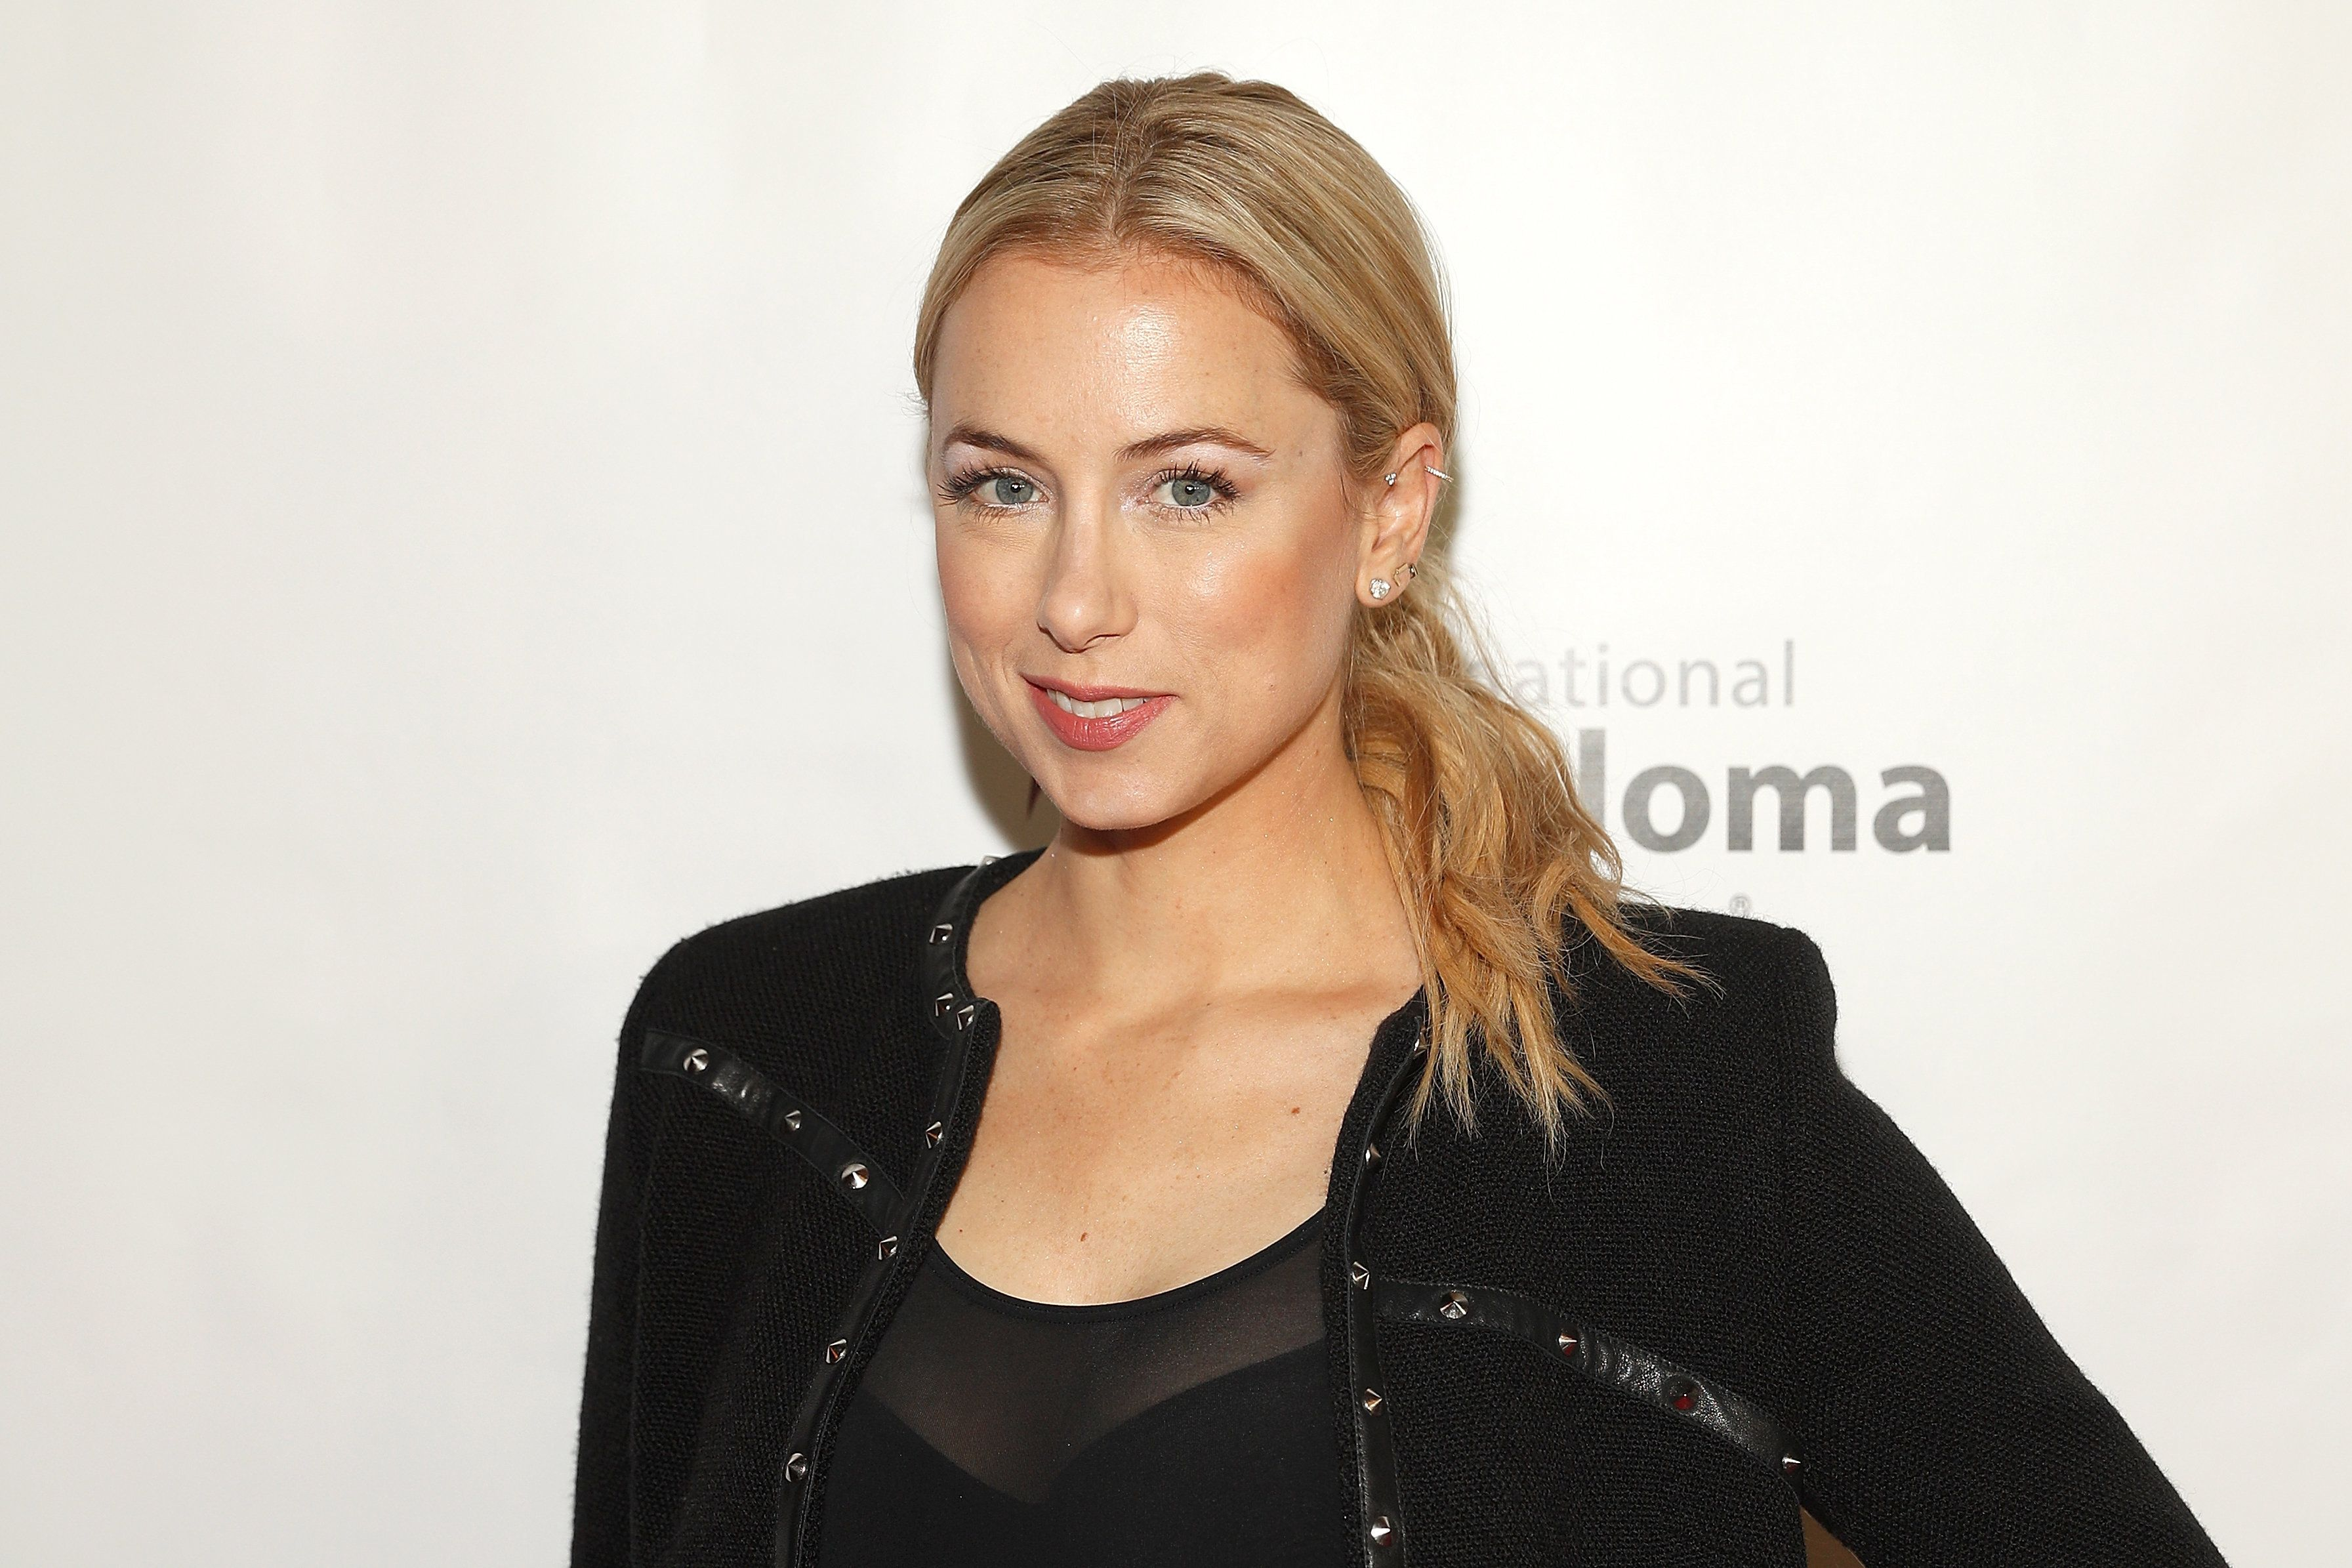 A California man wants justice after he was denied entry to Iliza Shlesinger's comedy show.